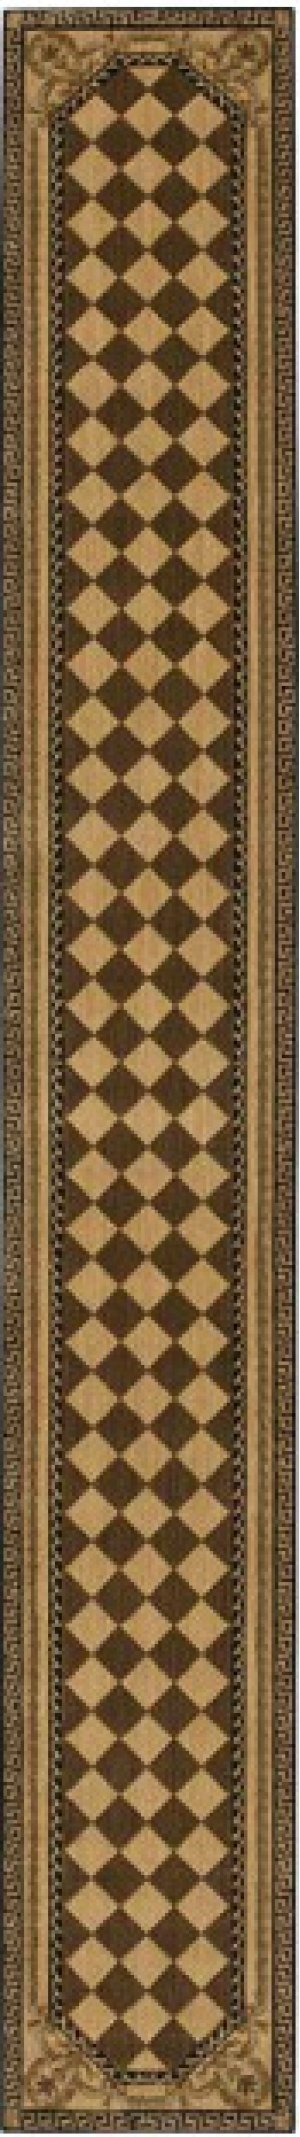 Hard To Find Sizes Grand Parterre Va02 Multi Rectangle Rug 2'3'' X 16'5''